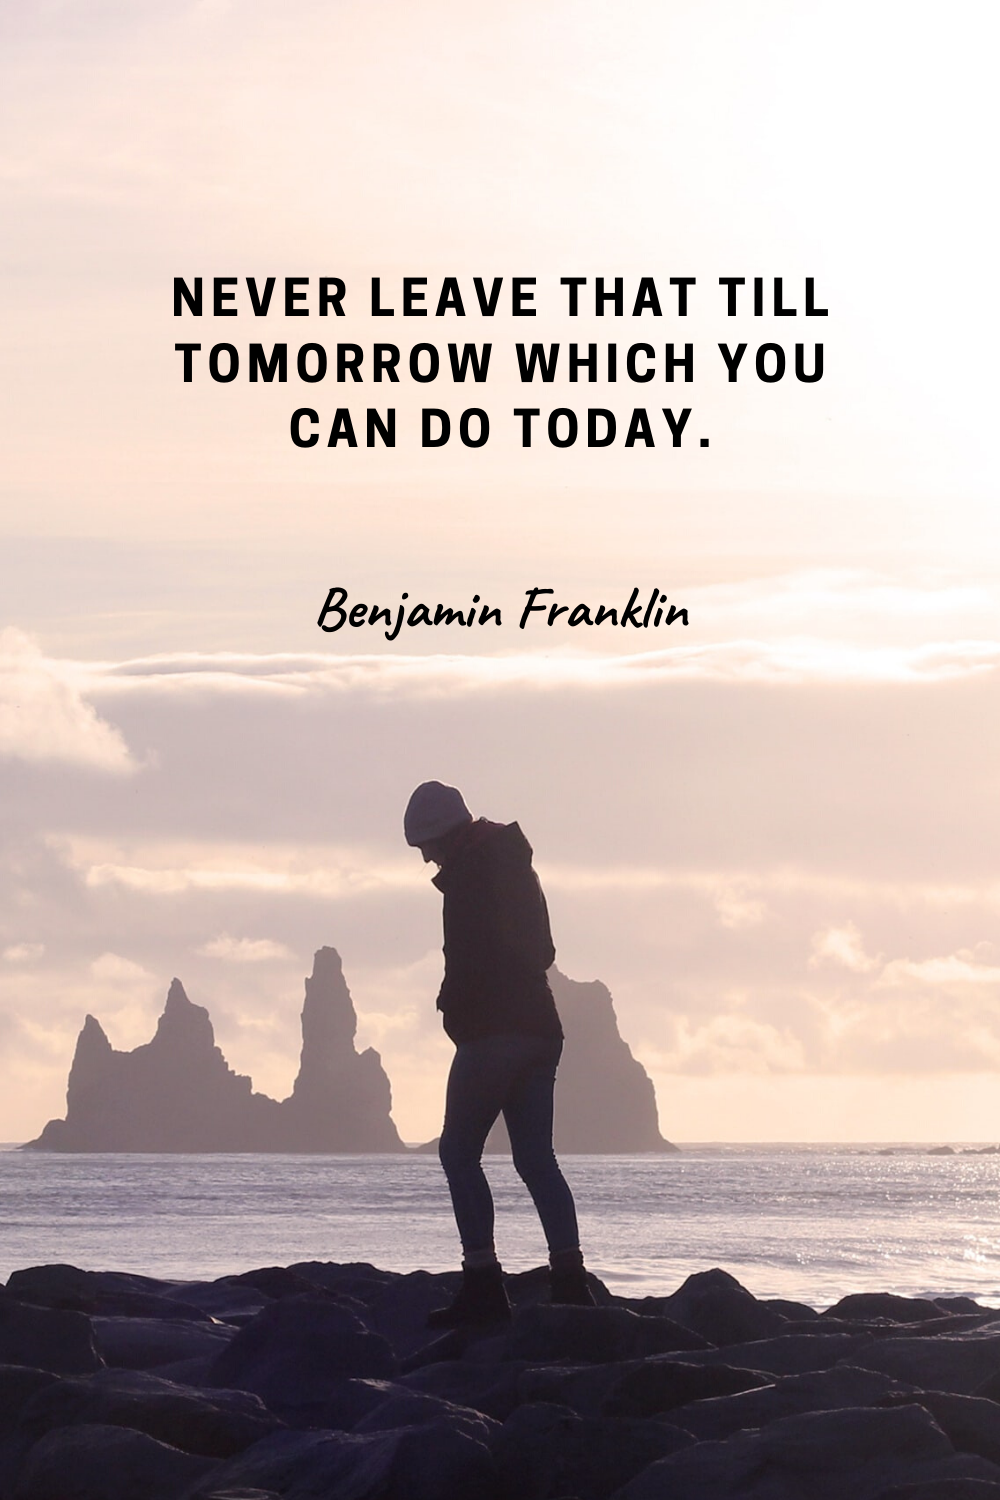 Happy Sunday to all Financial Freedom seekers! Here's one of our favorite quotes from Benjamin Franklin to keep you motivated! Definitely worth pinning! | positive inspirational quotes wisdom mindset #ideas #motivation #inspiration #wisdom #mindset #successfulpeople #staymotivated #positive